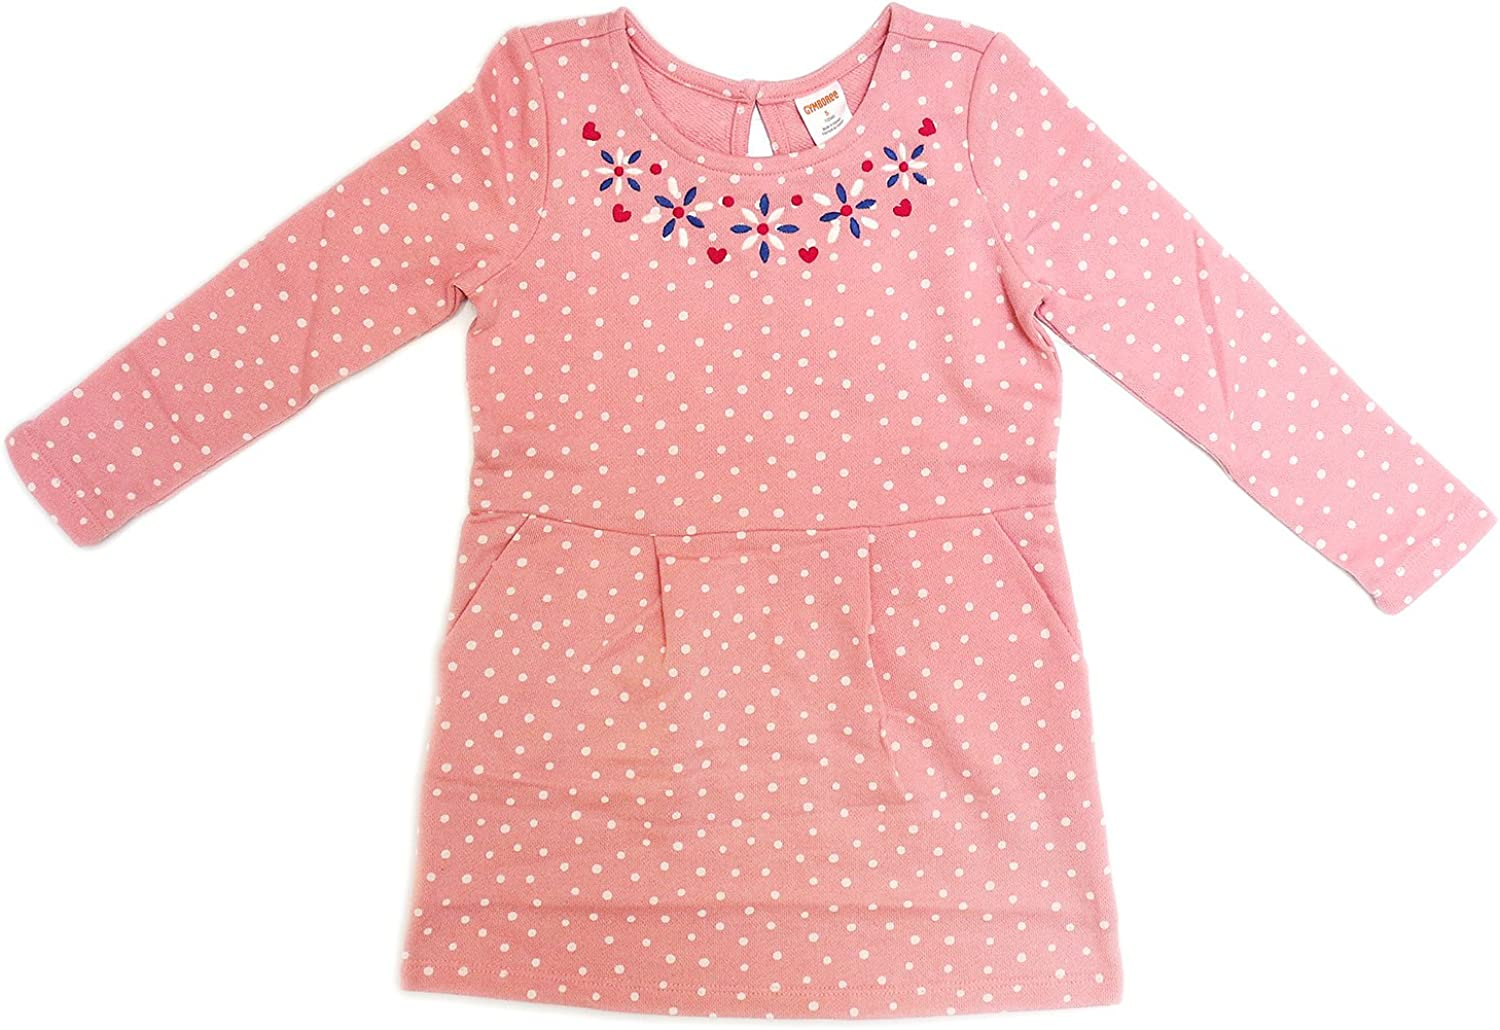 Gymboree Pink Sun Dress for Girls